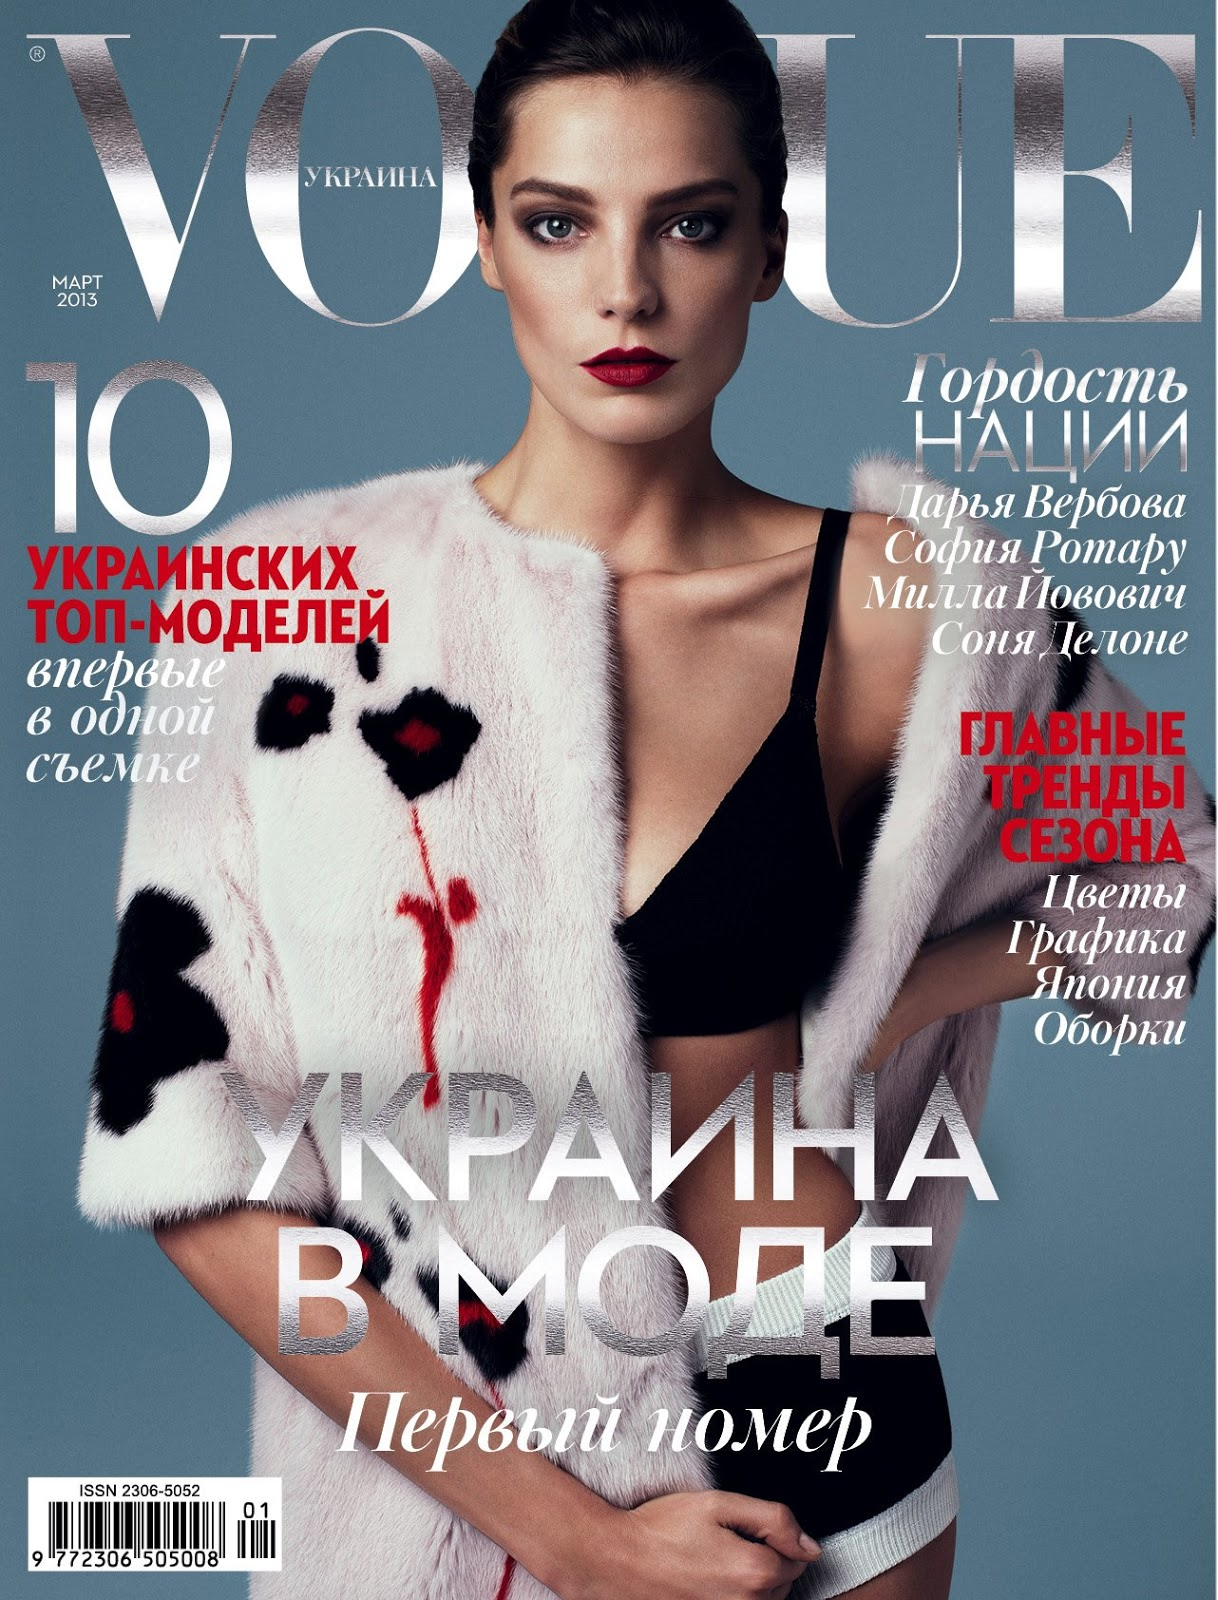 Vogue-Ukraine-March-2013-Premiere-Issue-Daria-Werbowy-Magazine-Cover